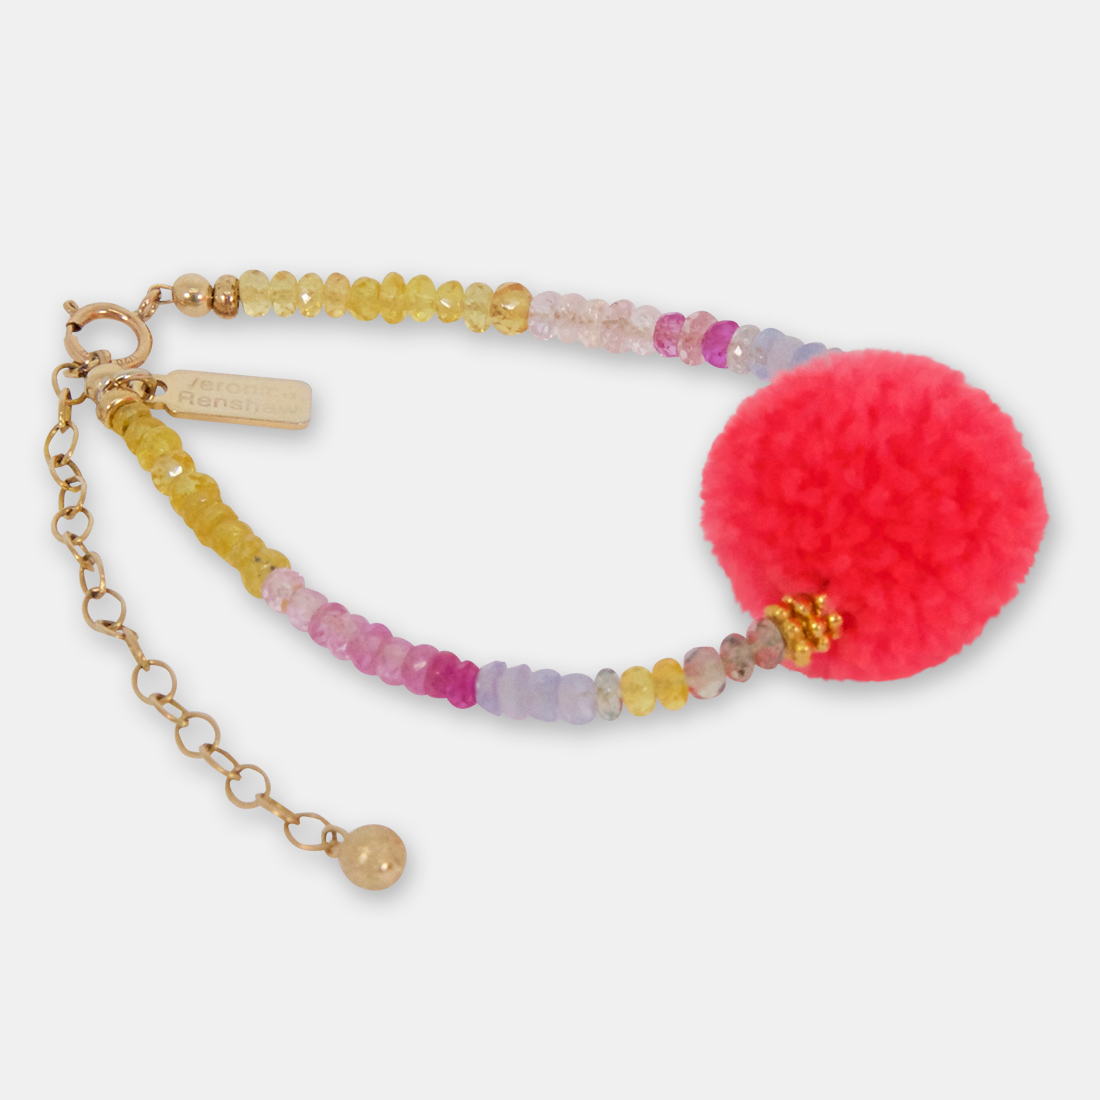 Superwomen's Addiction Middle Pom Pom by Sacred Confetti